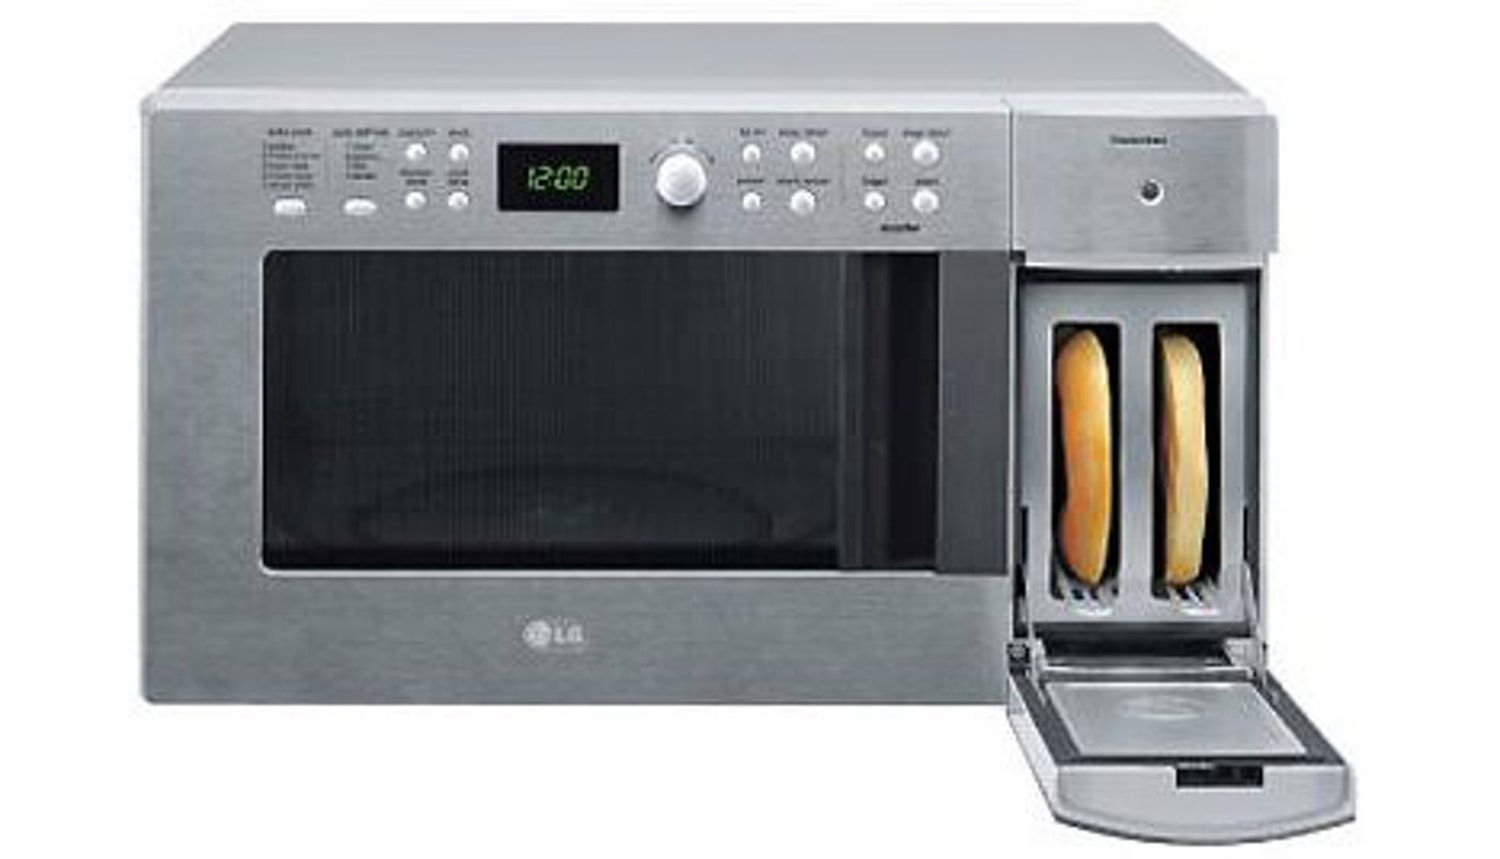 Small Space Cooking Lg Combo Microwave Oven Toaster Microwave Toaster Cool Kitchen Gadgets Microwave Oven